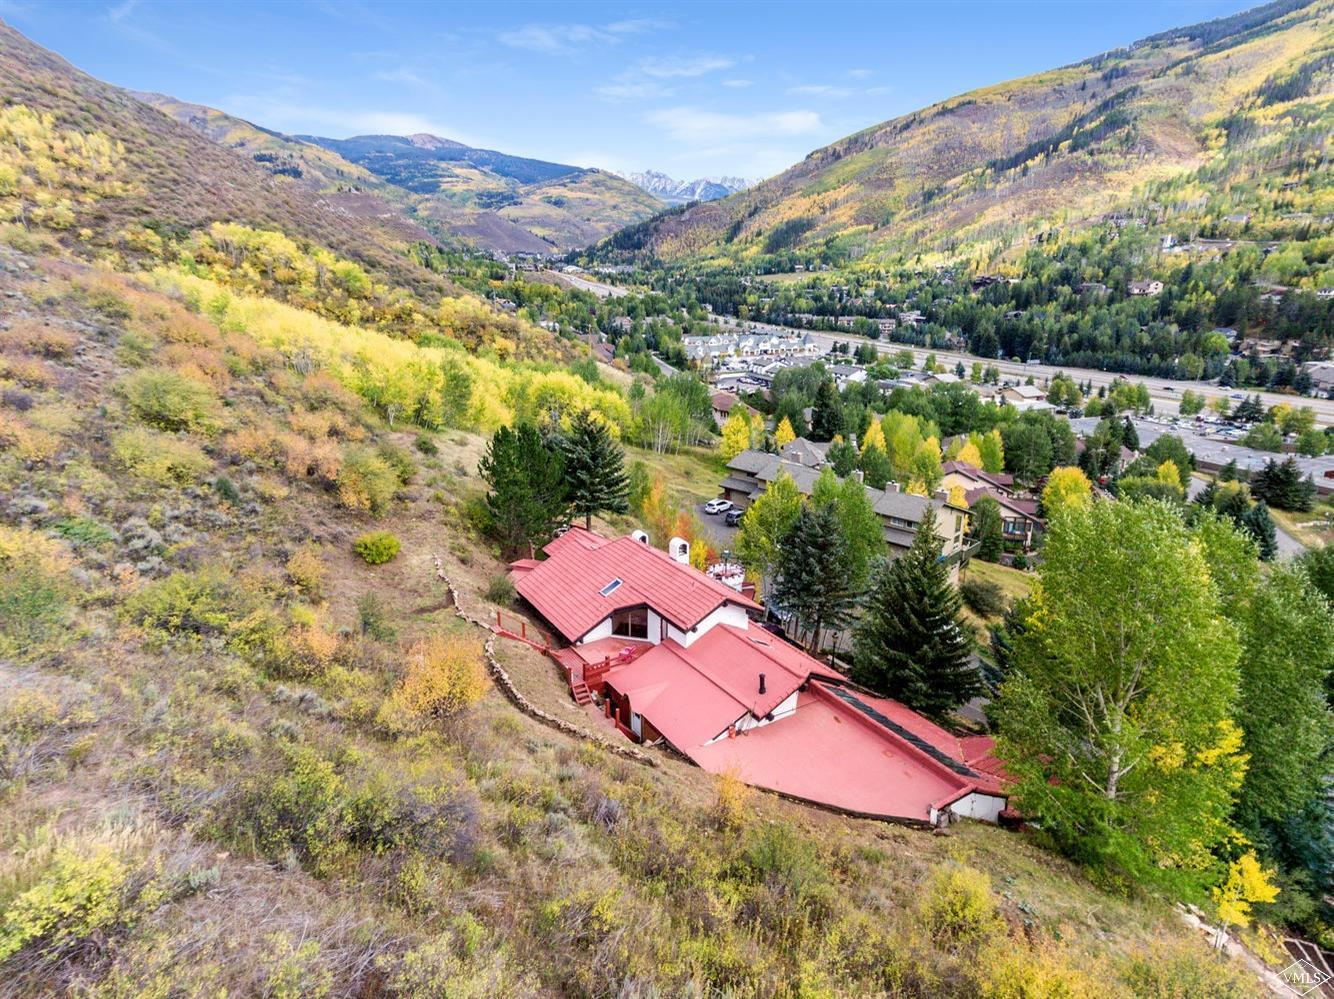 Truly one of West Vail's most stunning homesites with jaw dropping views to the Gore Range. Situated next to Forest Service land this home is an ideal candidate for an update that would make the envy of any home from East Vail to West Vail. Zoned for a Primary and a Secondary dwelling this has so many options to make it your private special Vail home.